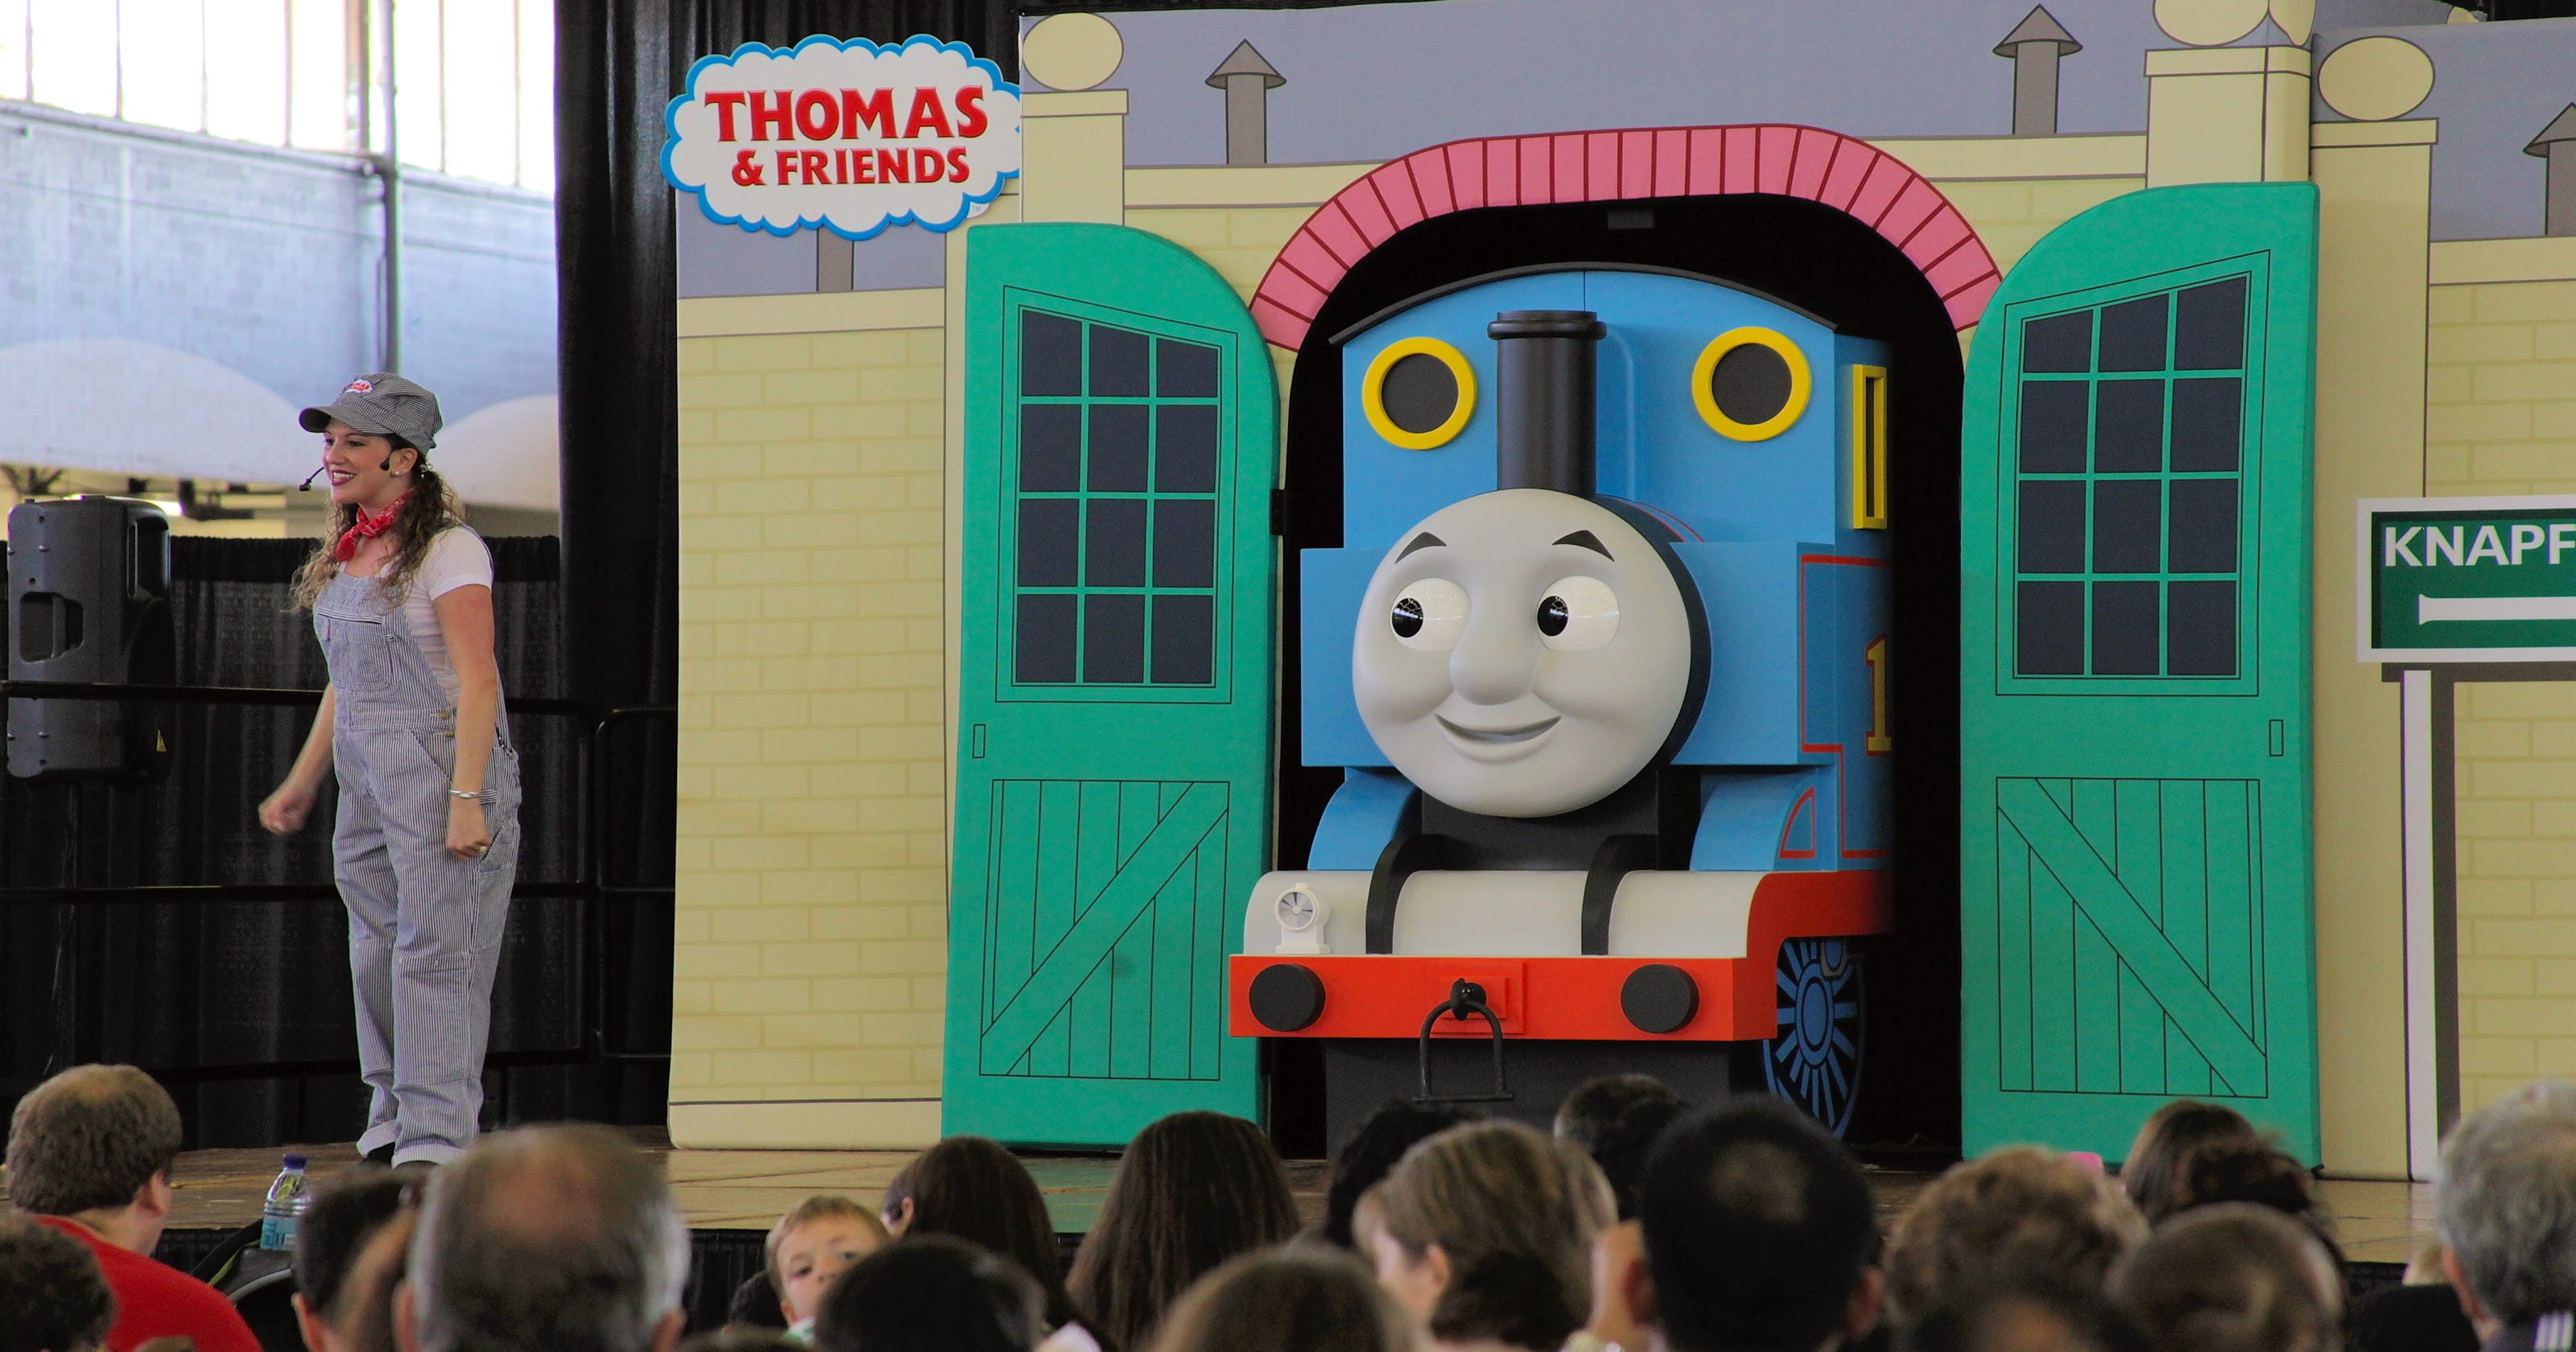 Family Fun Expo Brings Thomas The Tank Engine Games And More